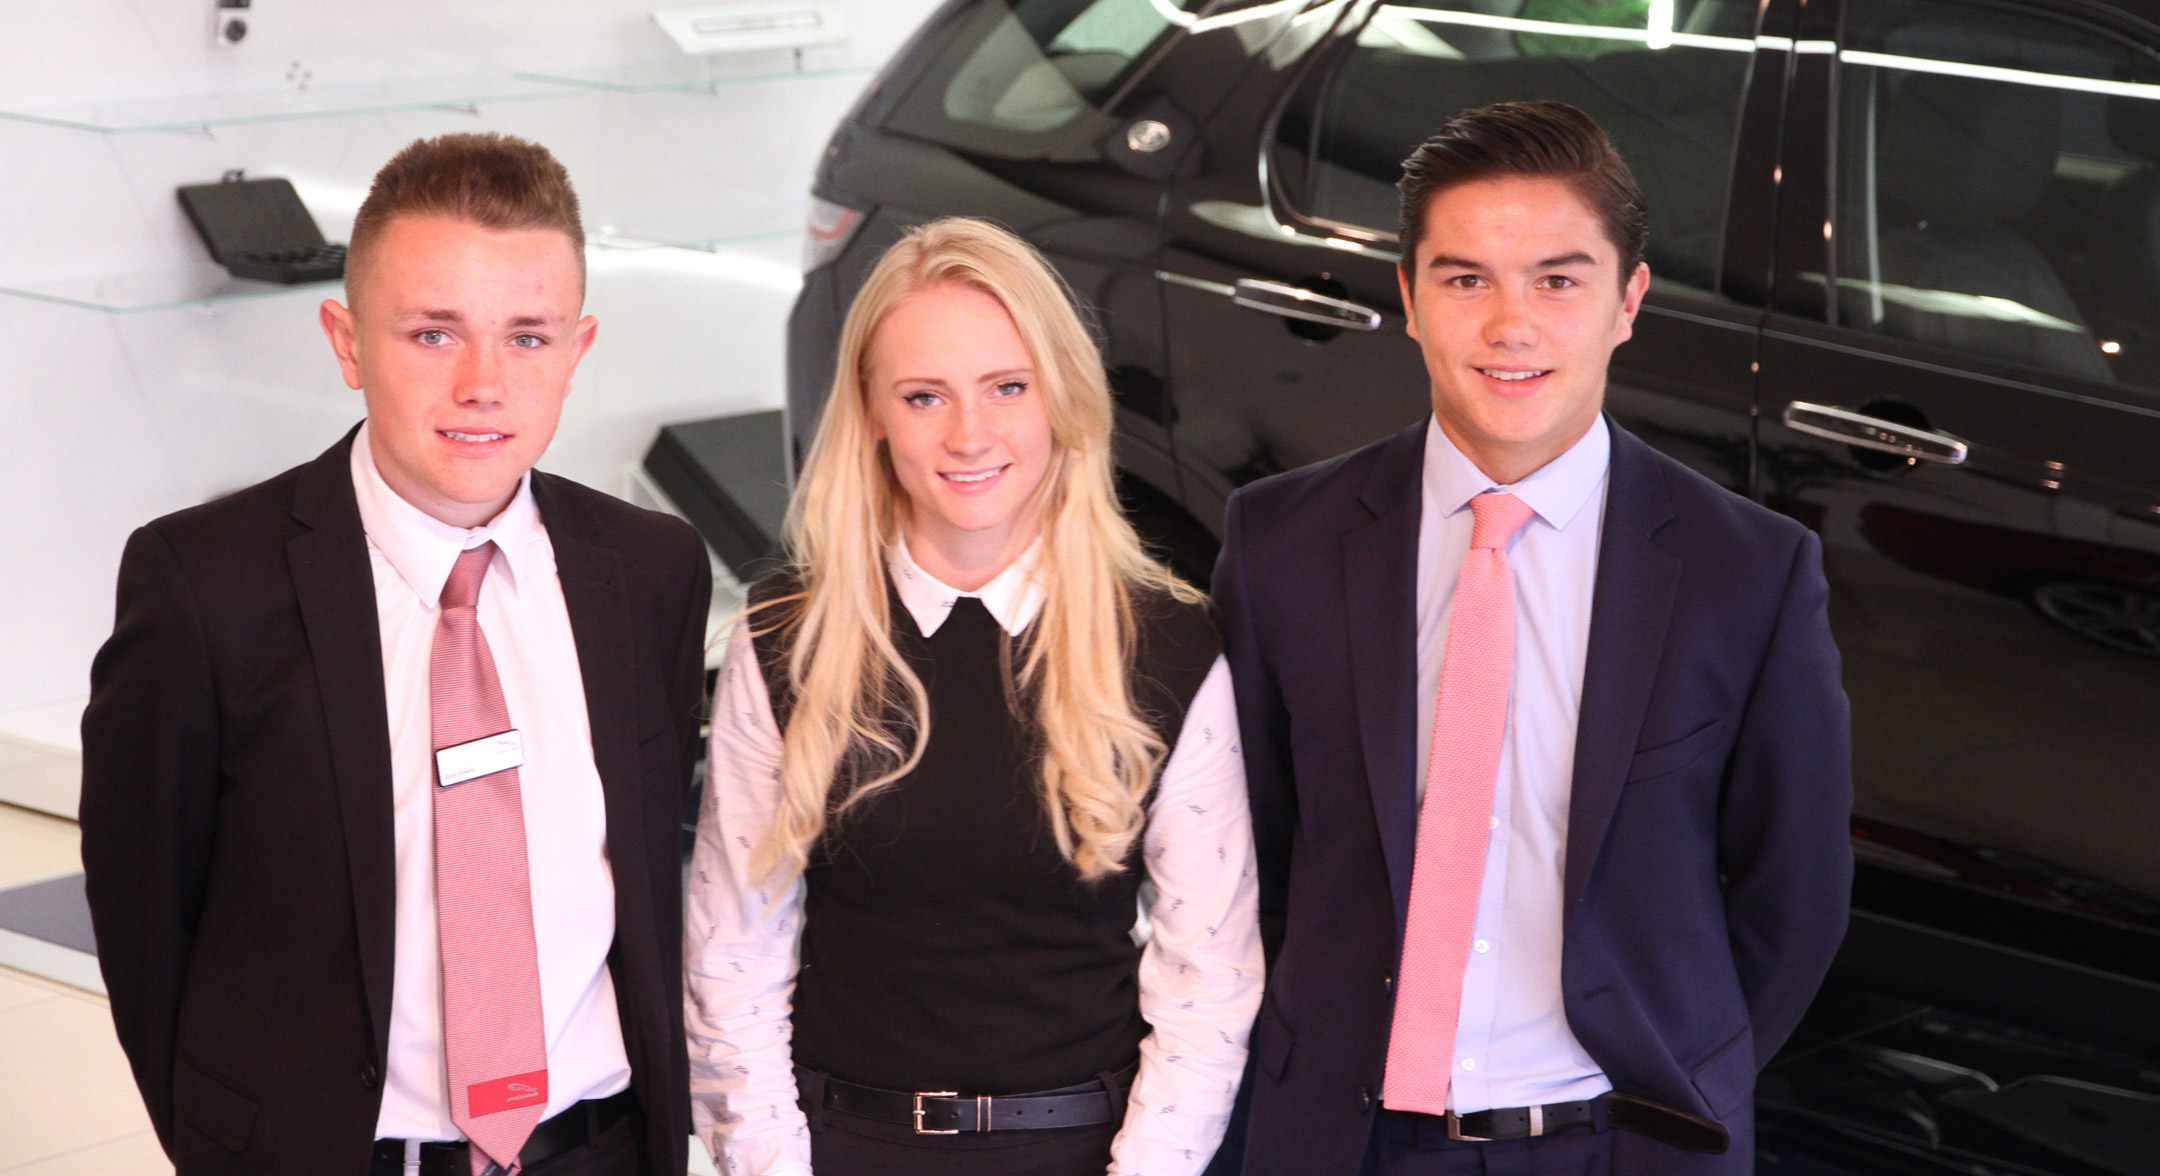 An image of three apprentices stood in front of a Range Rover